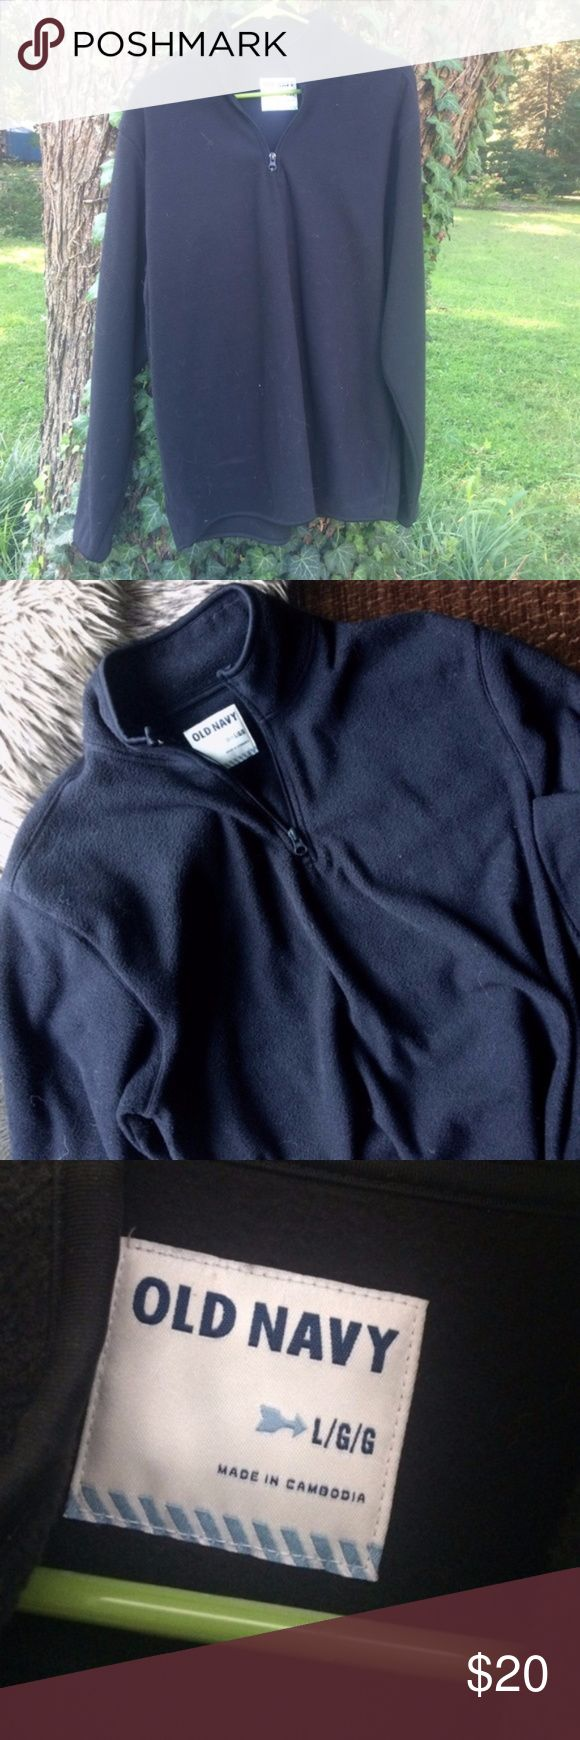 Old Navy warm pullover half zip soft fleece L Men's Old Navy pullover half zip fleece, no flaws, very soft size large. Color is solid black. Non-smoking home. Old Navy Jackets & Coats